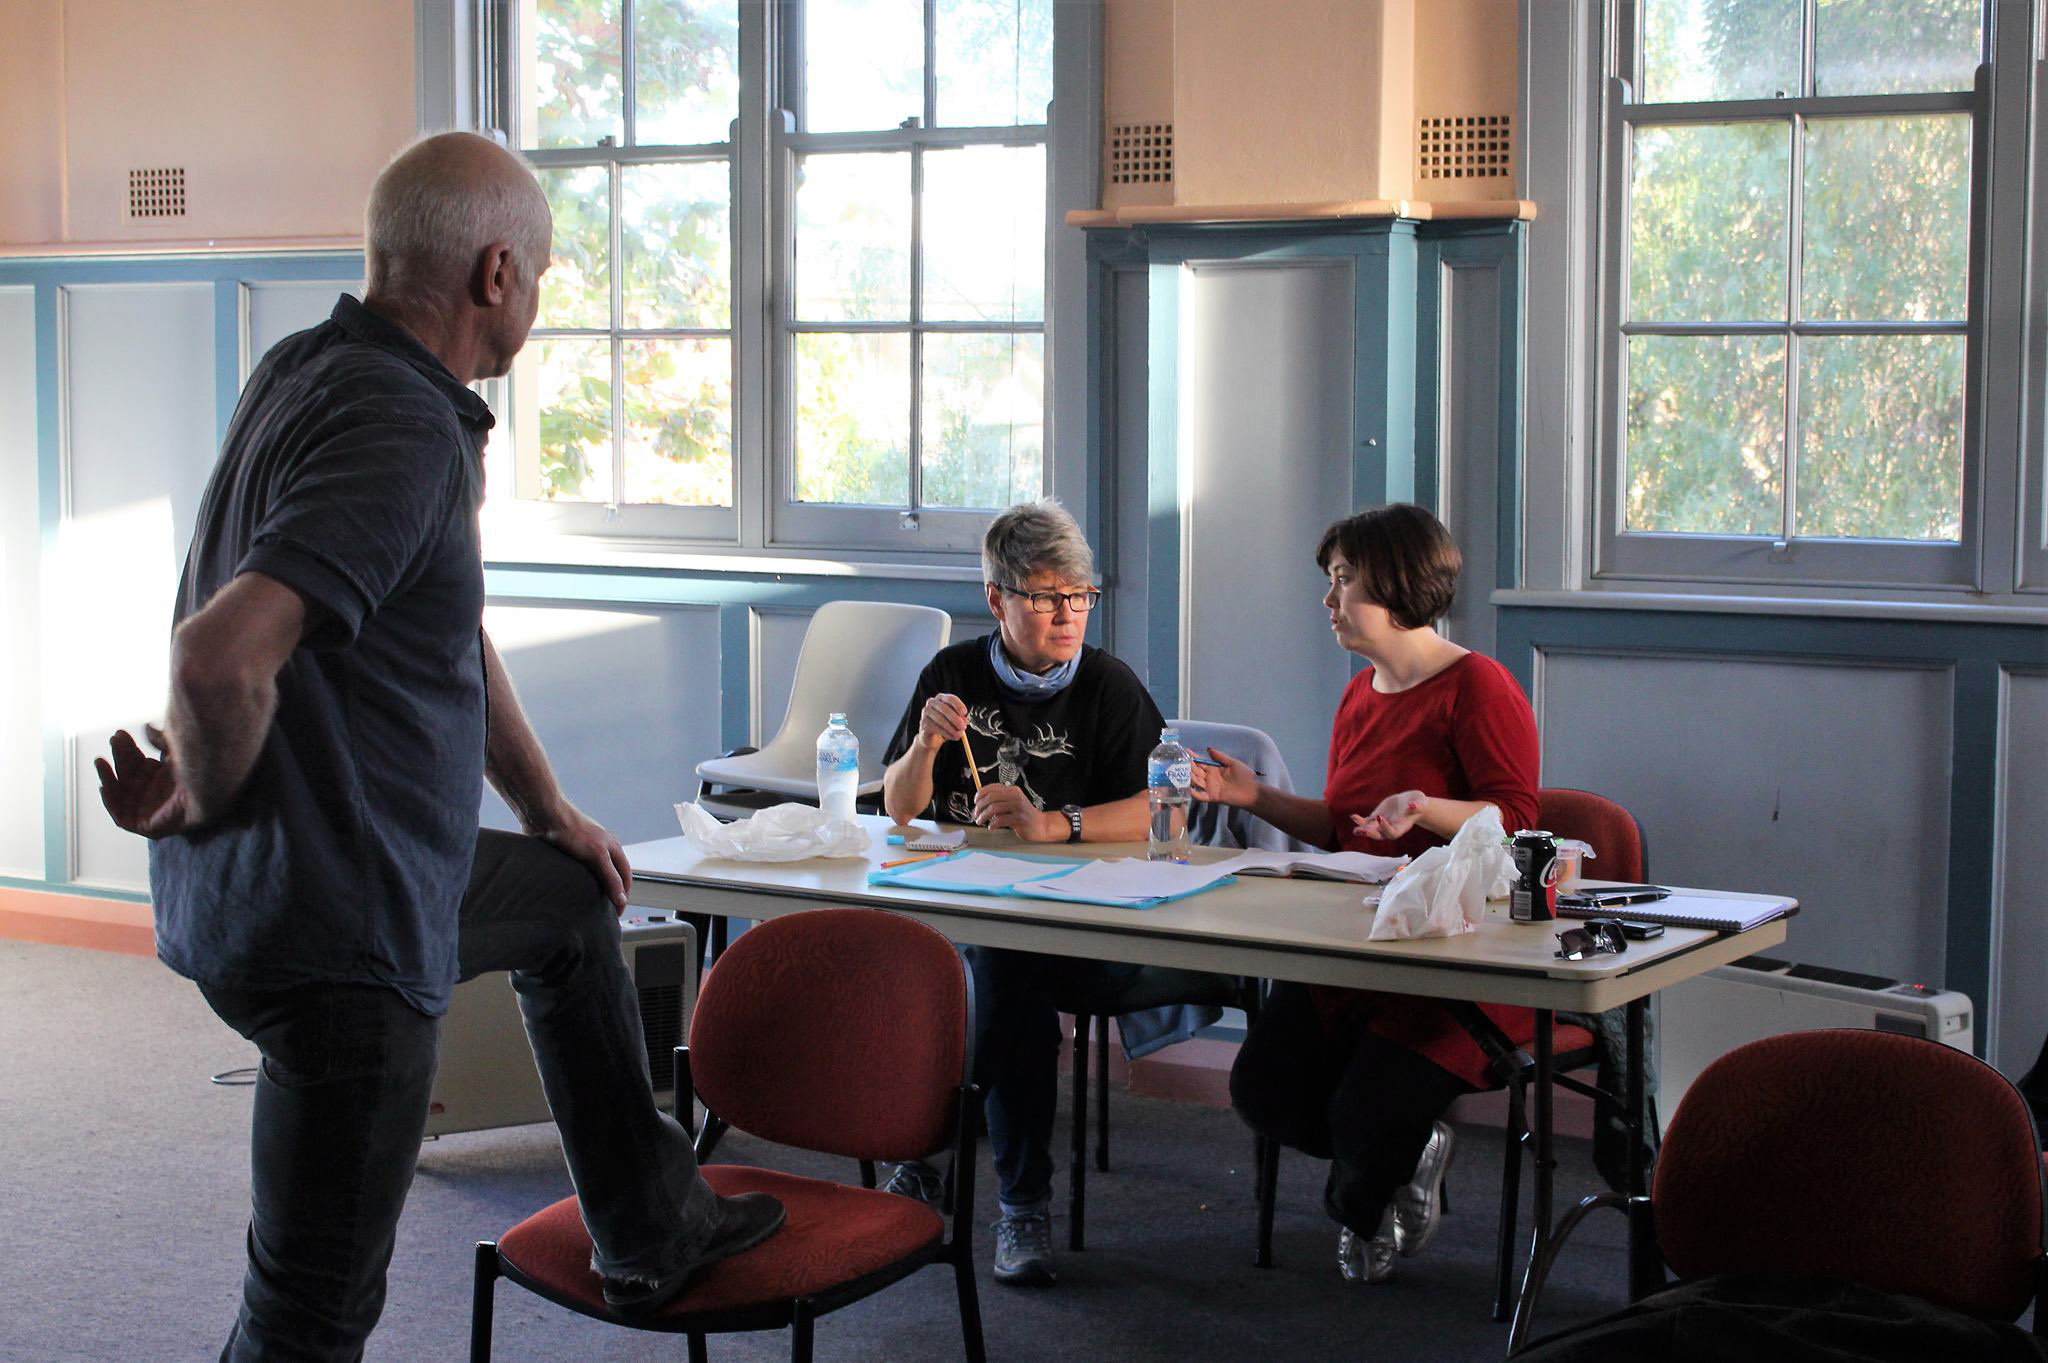 TRAINING OPPORTUNITIES - Spark is interested in supporting both emerging and professional artists to gain experience and develop skills in facilitating workshops within the community arts sector. If you are interested in broadening your artistic horizons and engaging creatively with communities (particularly with young people in Sydney's inner west!), don't hesitate to contact the Artistic Director at artisticdirector@sparkyouththeatre.com to discuss the possibility of an internship with Spark.